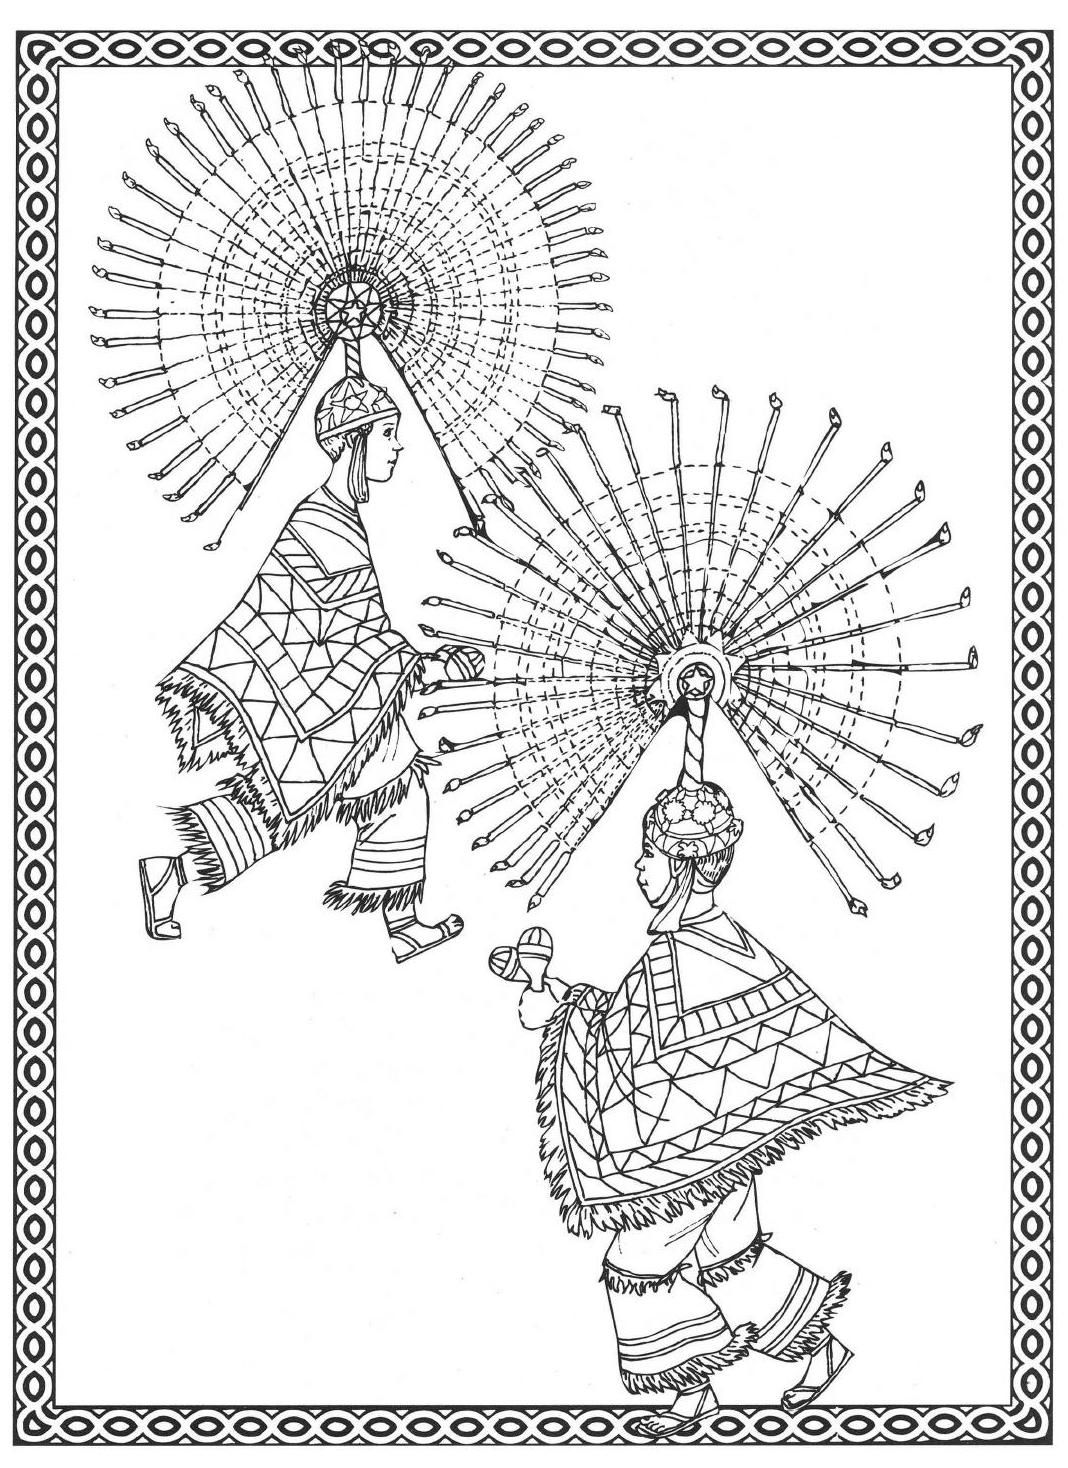 Dancers coloring book costumes for coloring | Book costumes ...